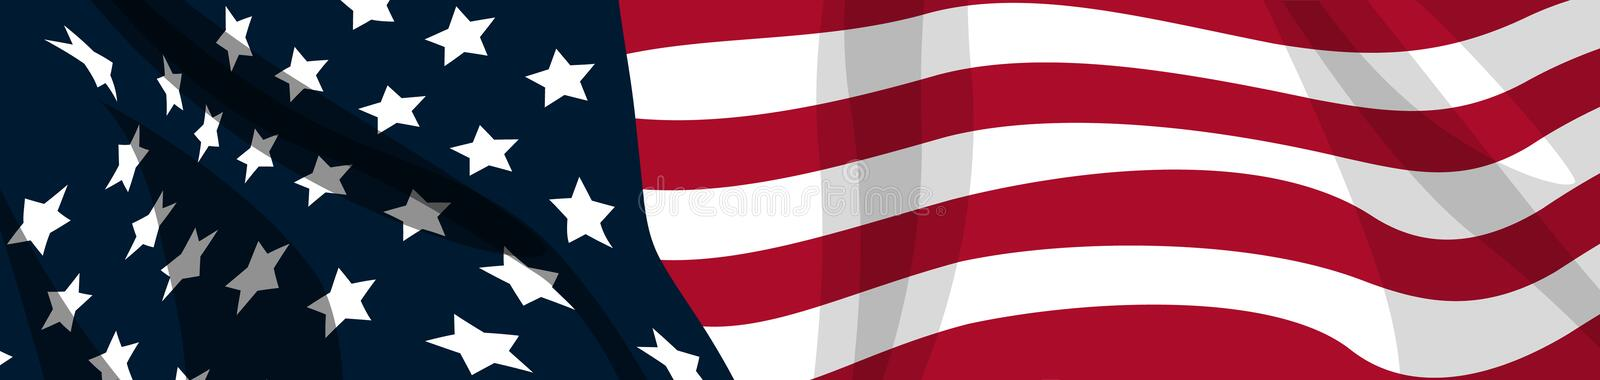 Flag USA royalty free illustration